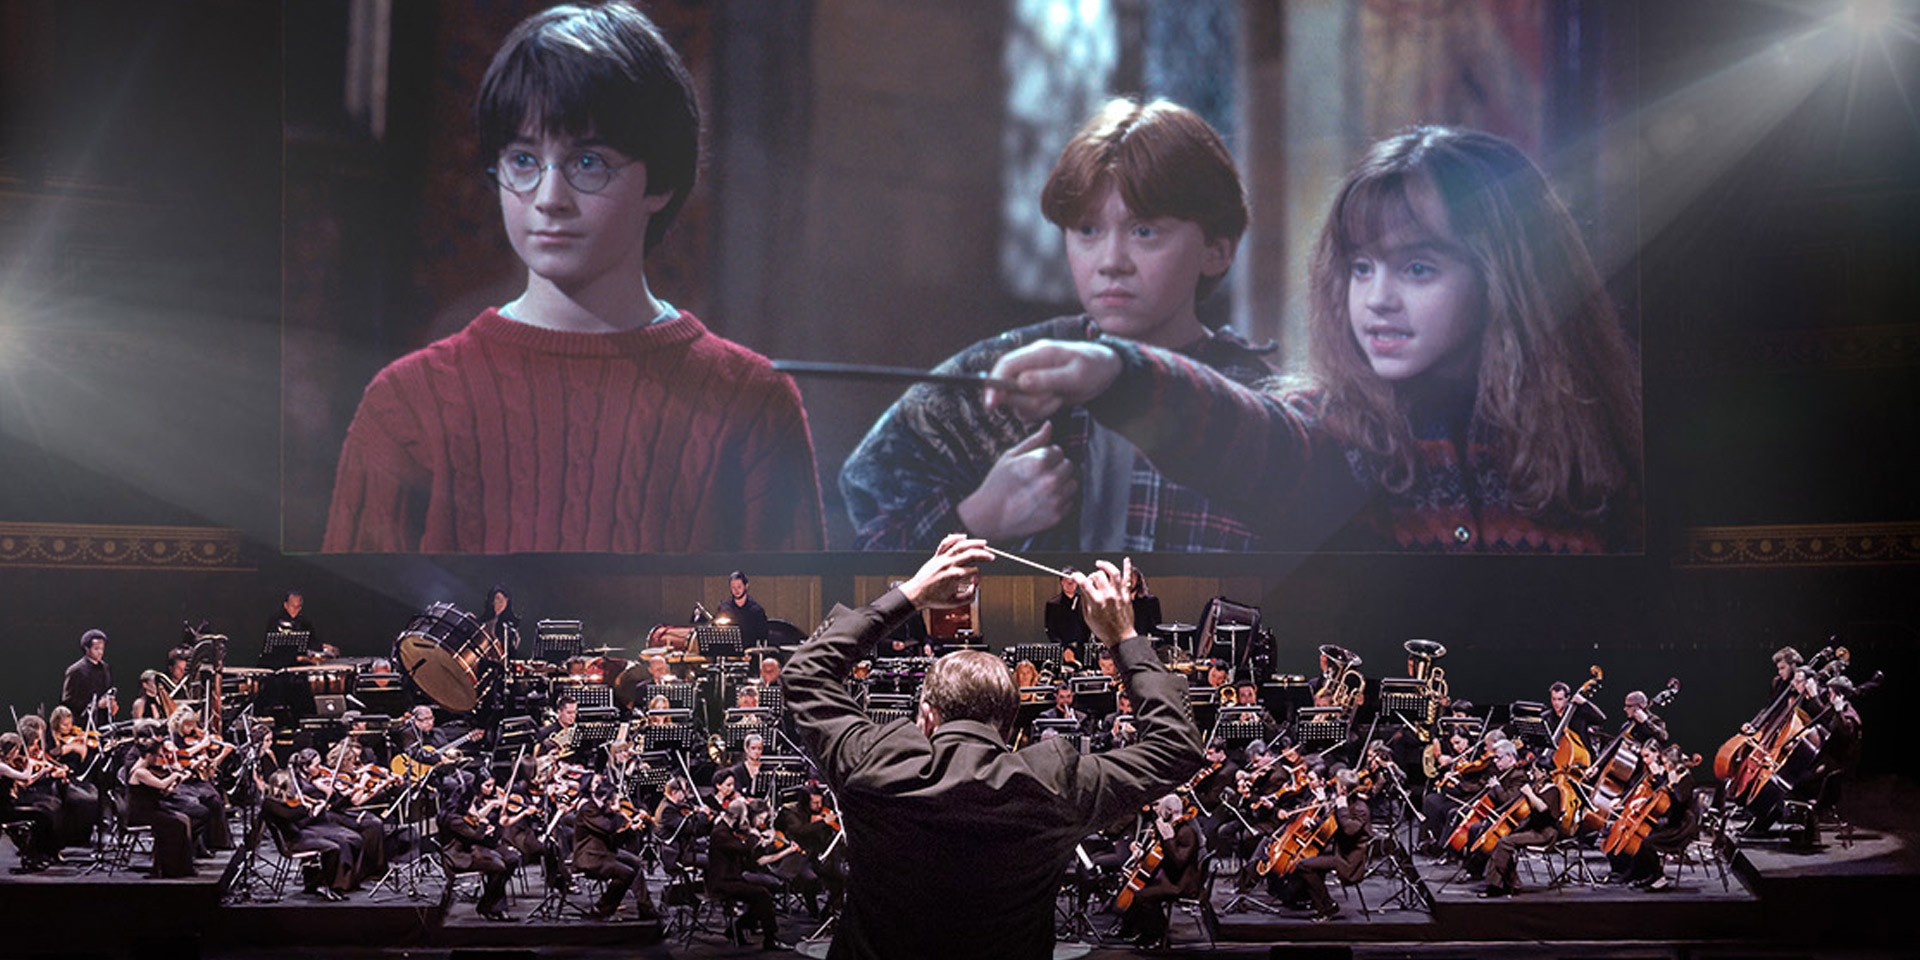 Relive the magic of Harry Potter and the Sorcerer's Stone in concert this September